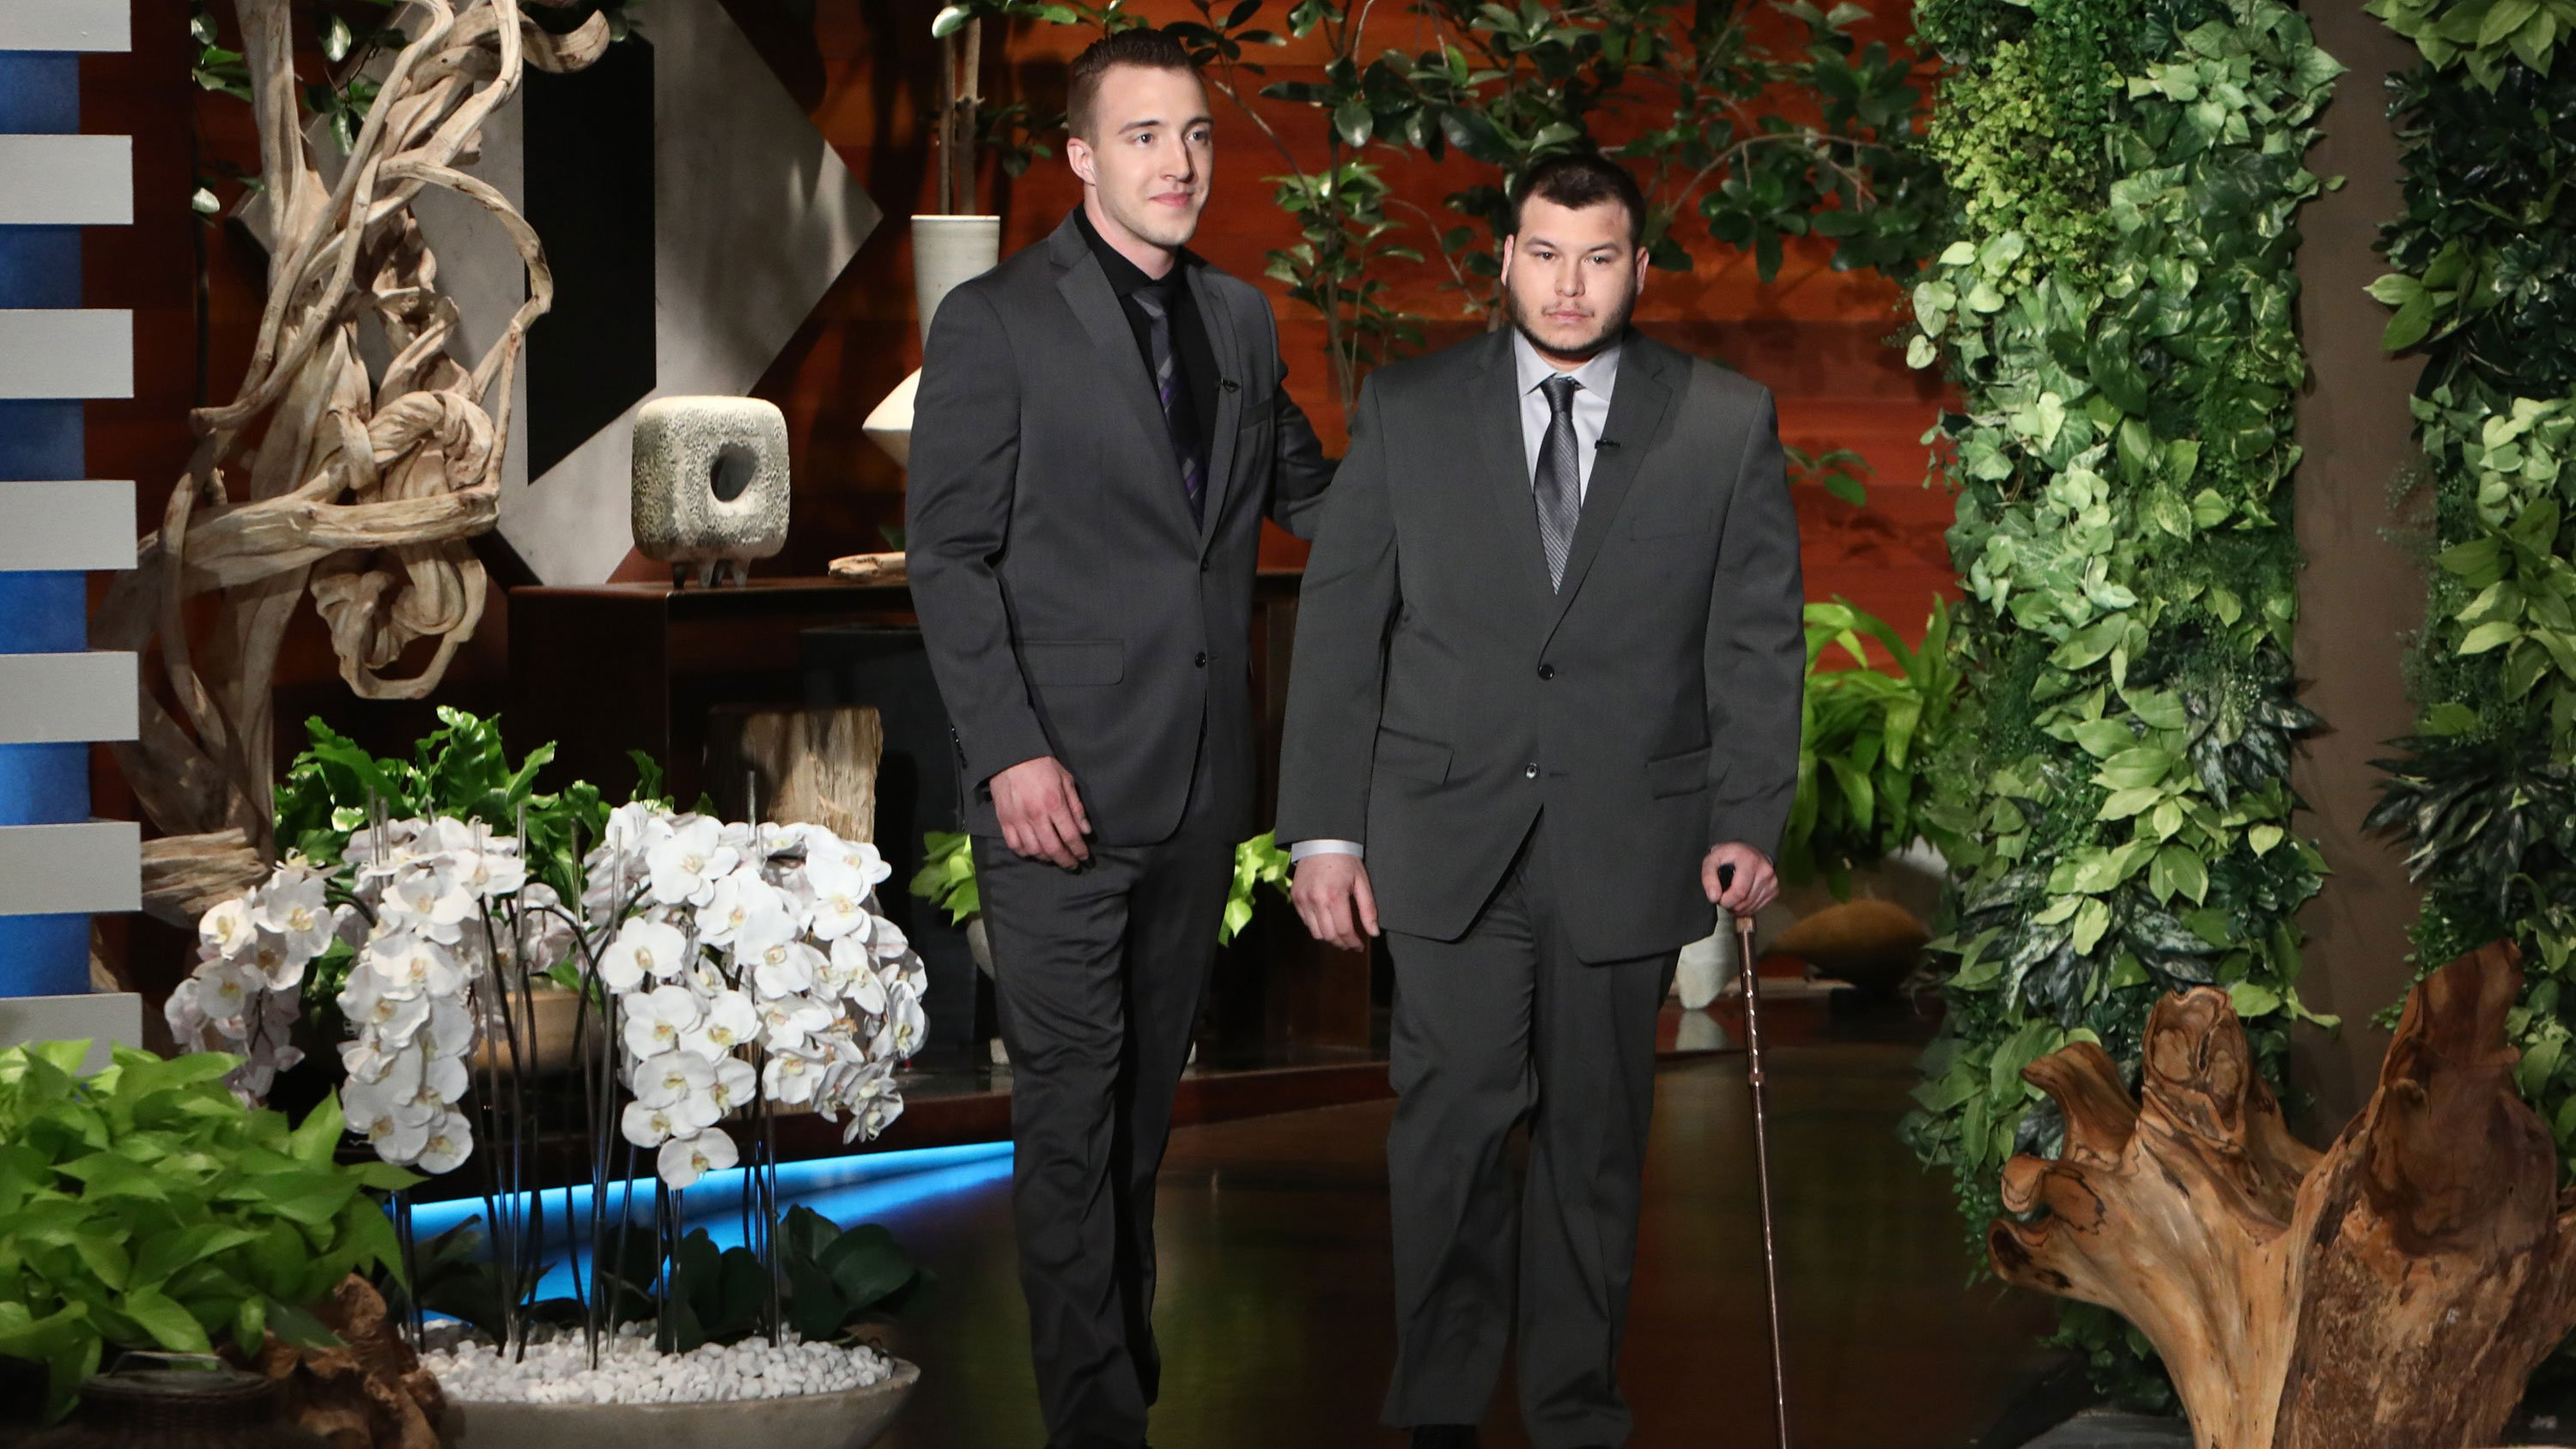 Mandalay Bay engineer Stephen Schuck (left) and security guard Jesus Campos (right) appear on The Ellen DeGeneres Show. (Mike Rozman/Warner Bros.)